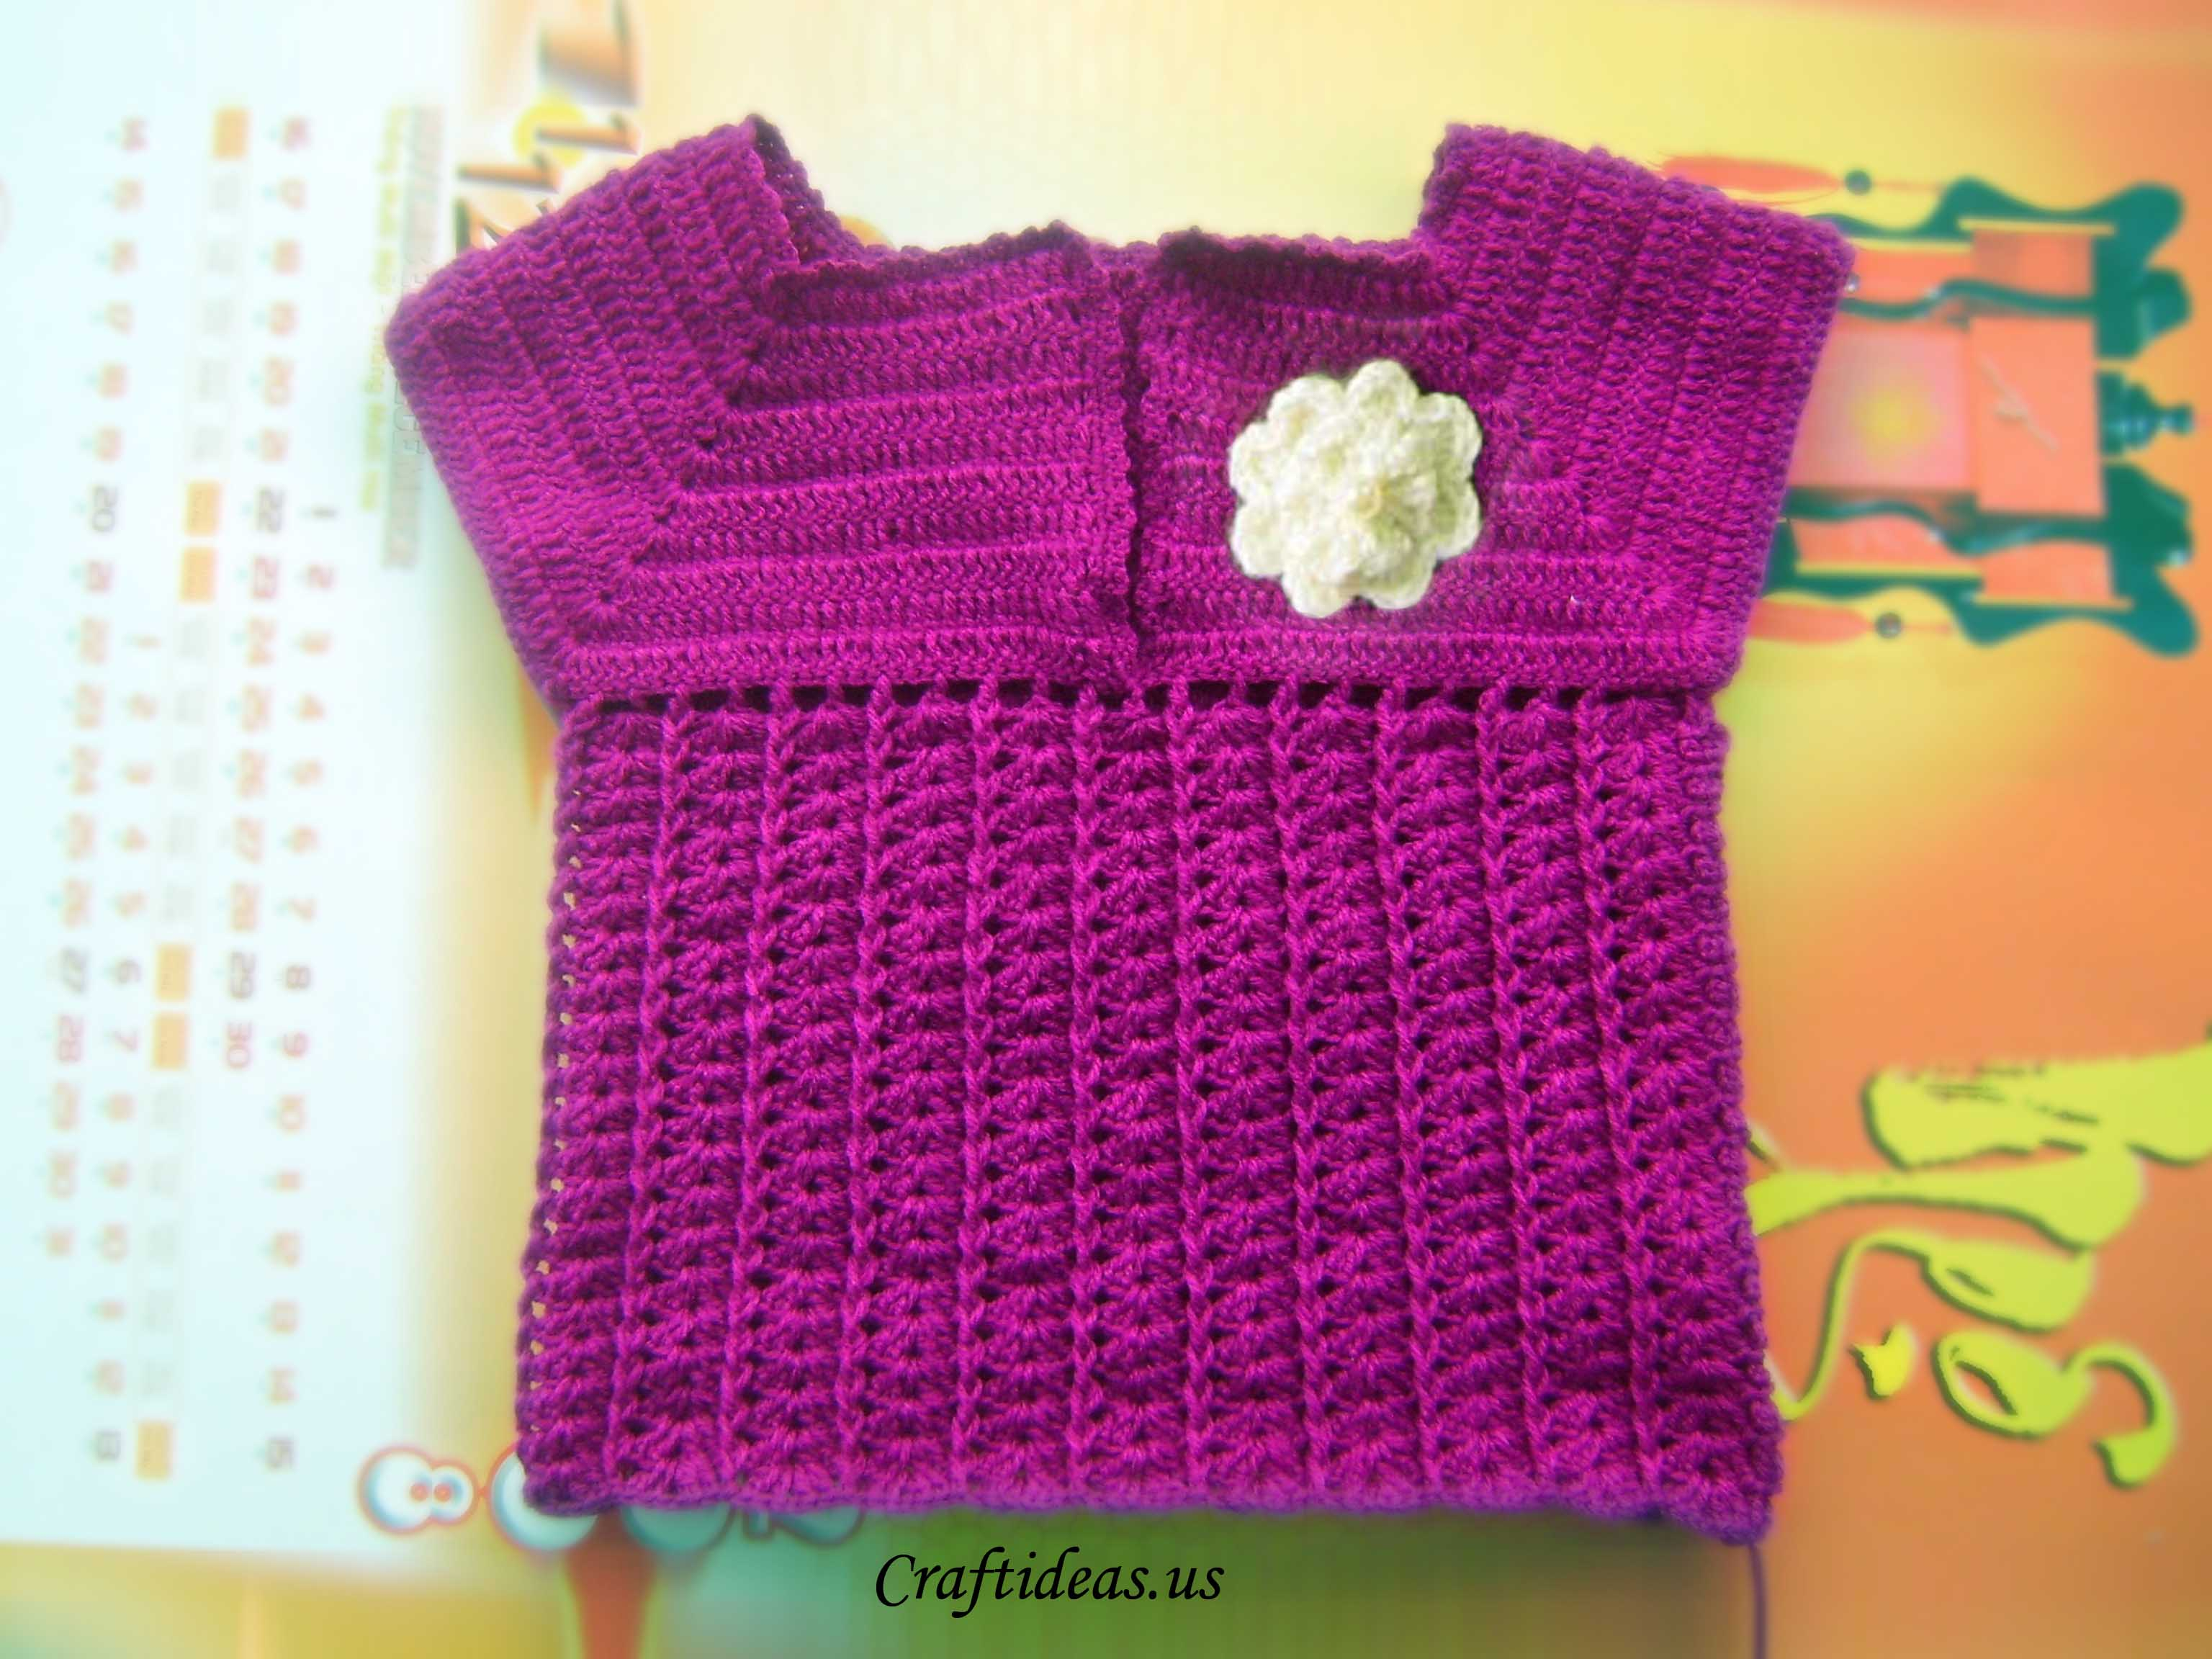 Crochet sweater for 2 year old girl craft ideas for Crochet crafts for kids